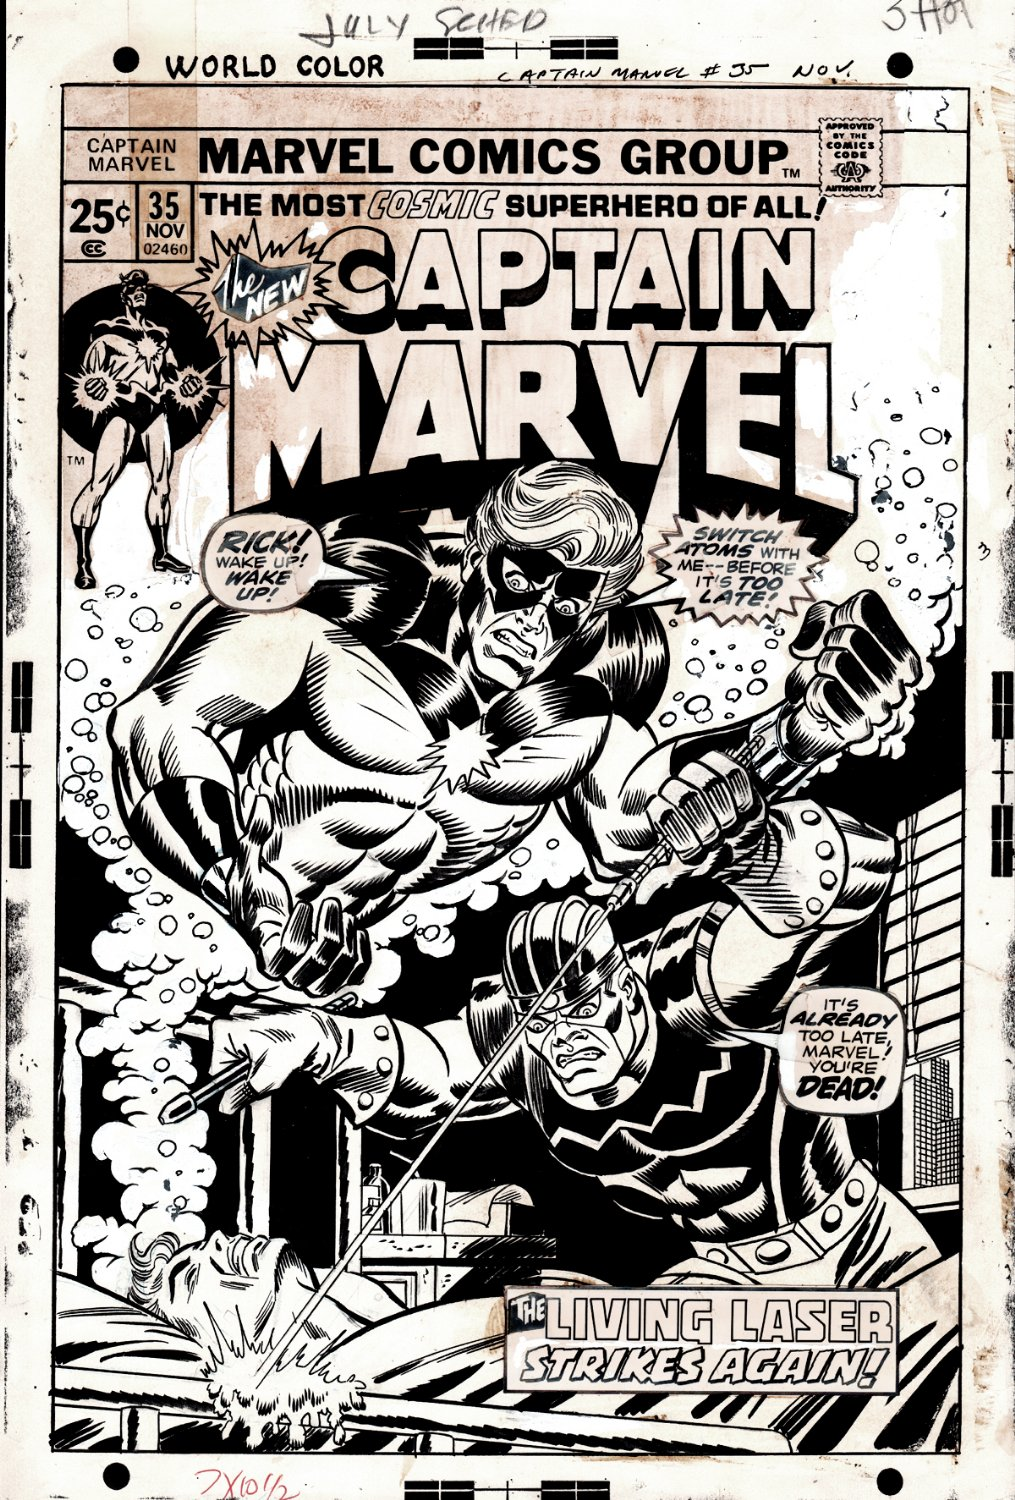 Captain Marvel #35 Cover (Captain Marvel Watches Rick Jones Being Killed By The Living Laser!) 1974